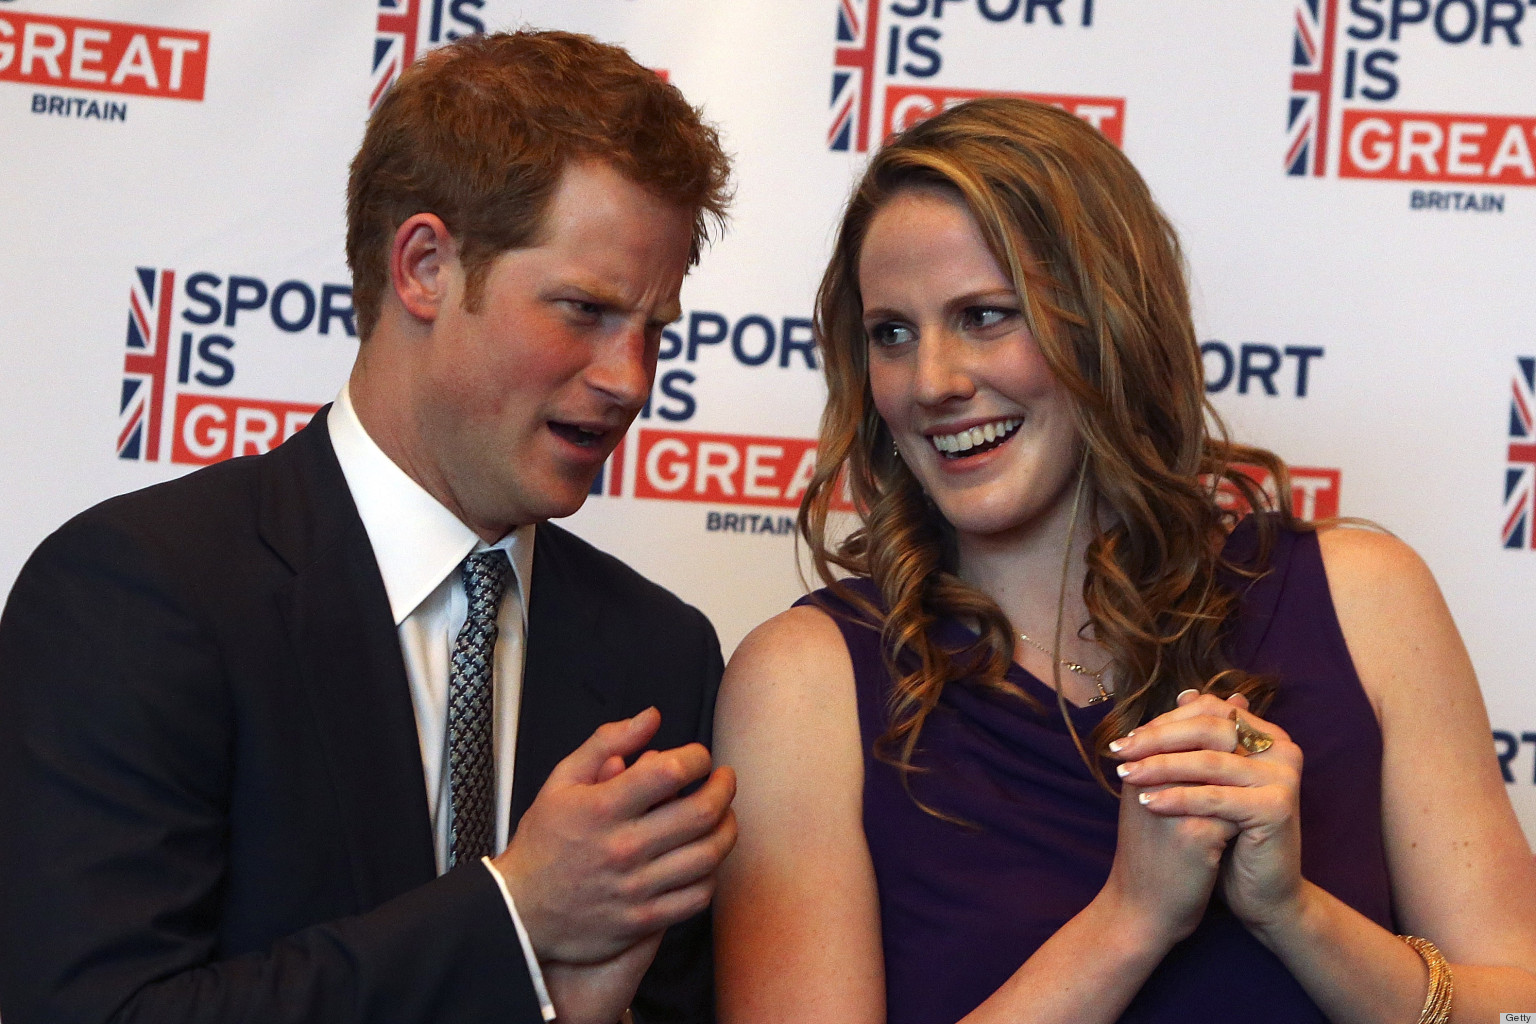 PHOTOS: Prince Harry Is One Athlete's 18th Birthday Present